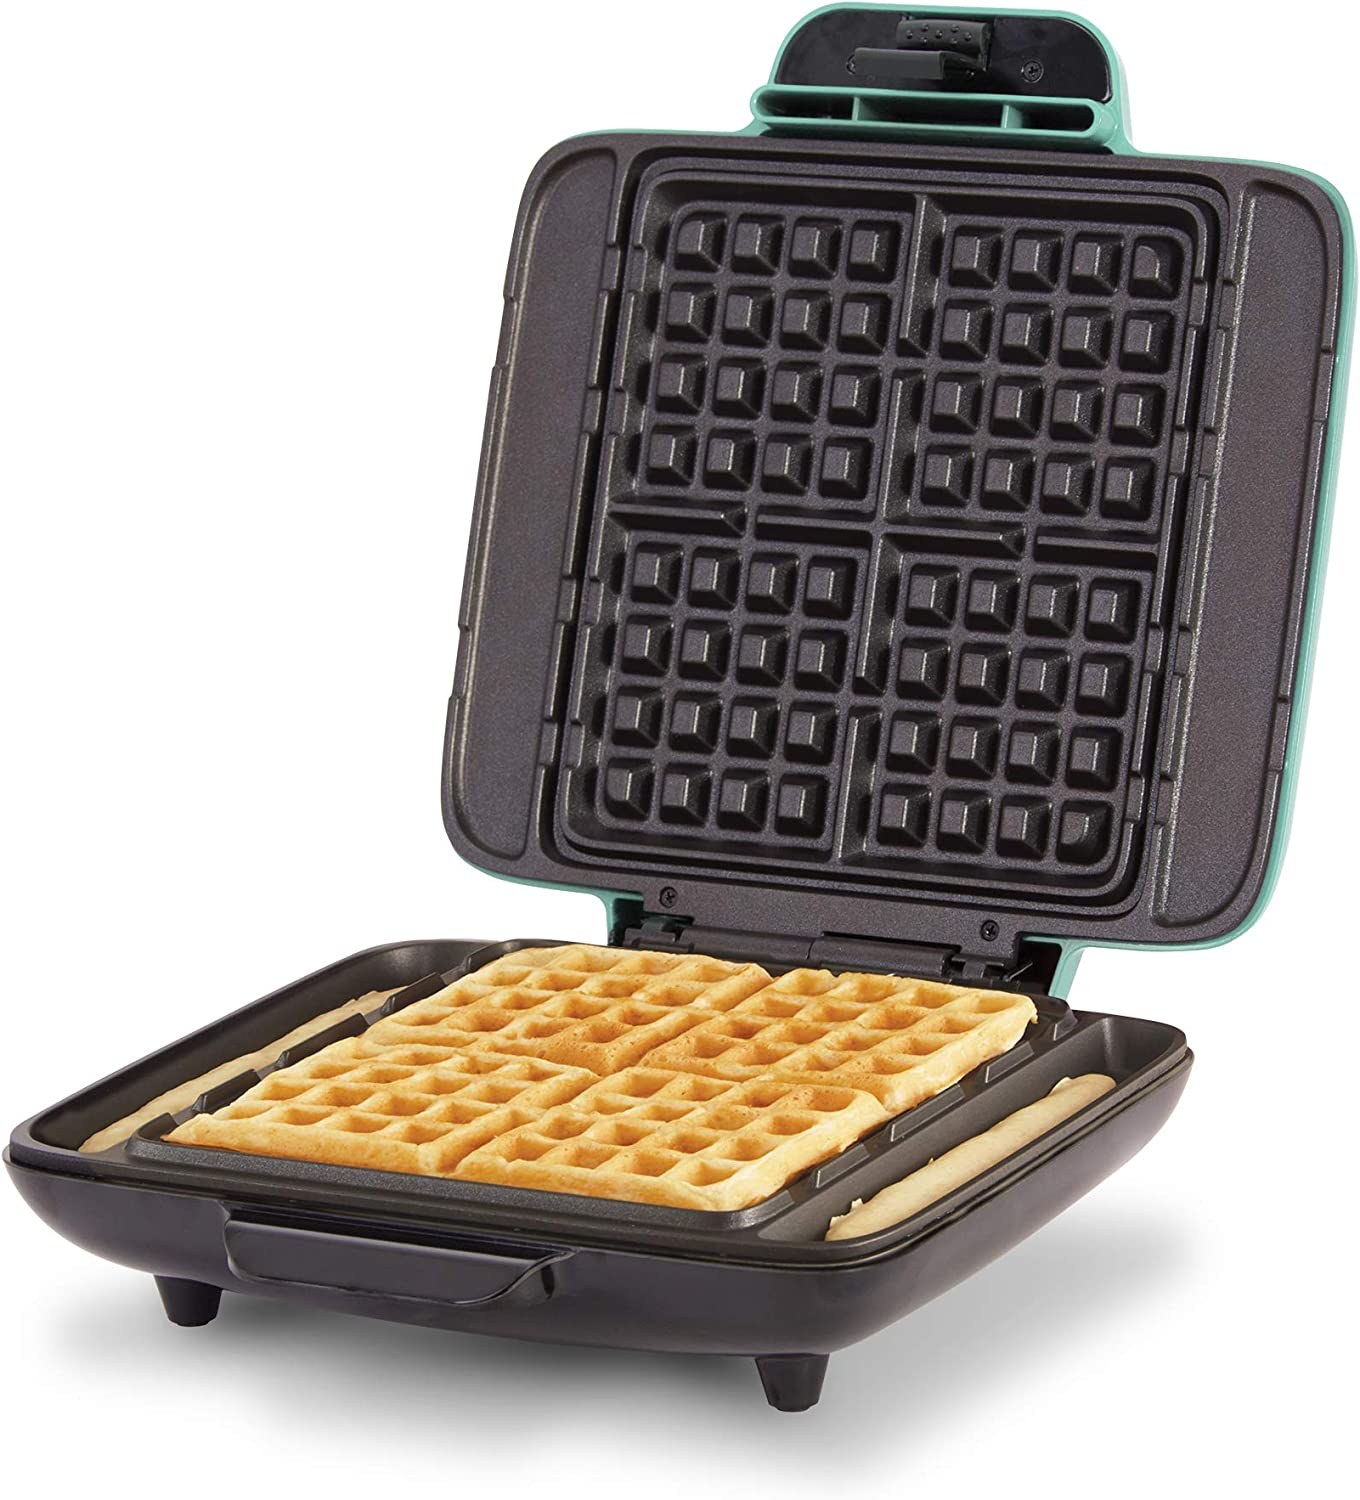 Excellence DASH No-Drip Belgian Waffle Maker: OFFer Iron 1200W Ma +